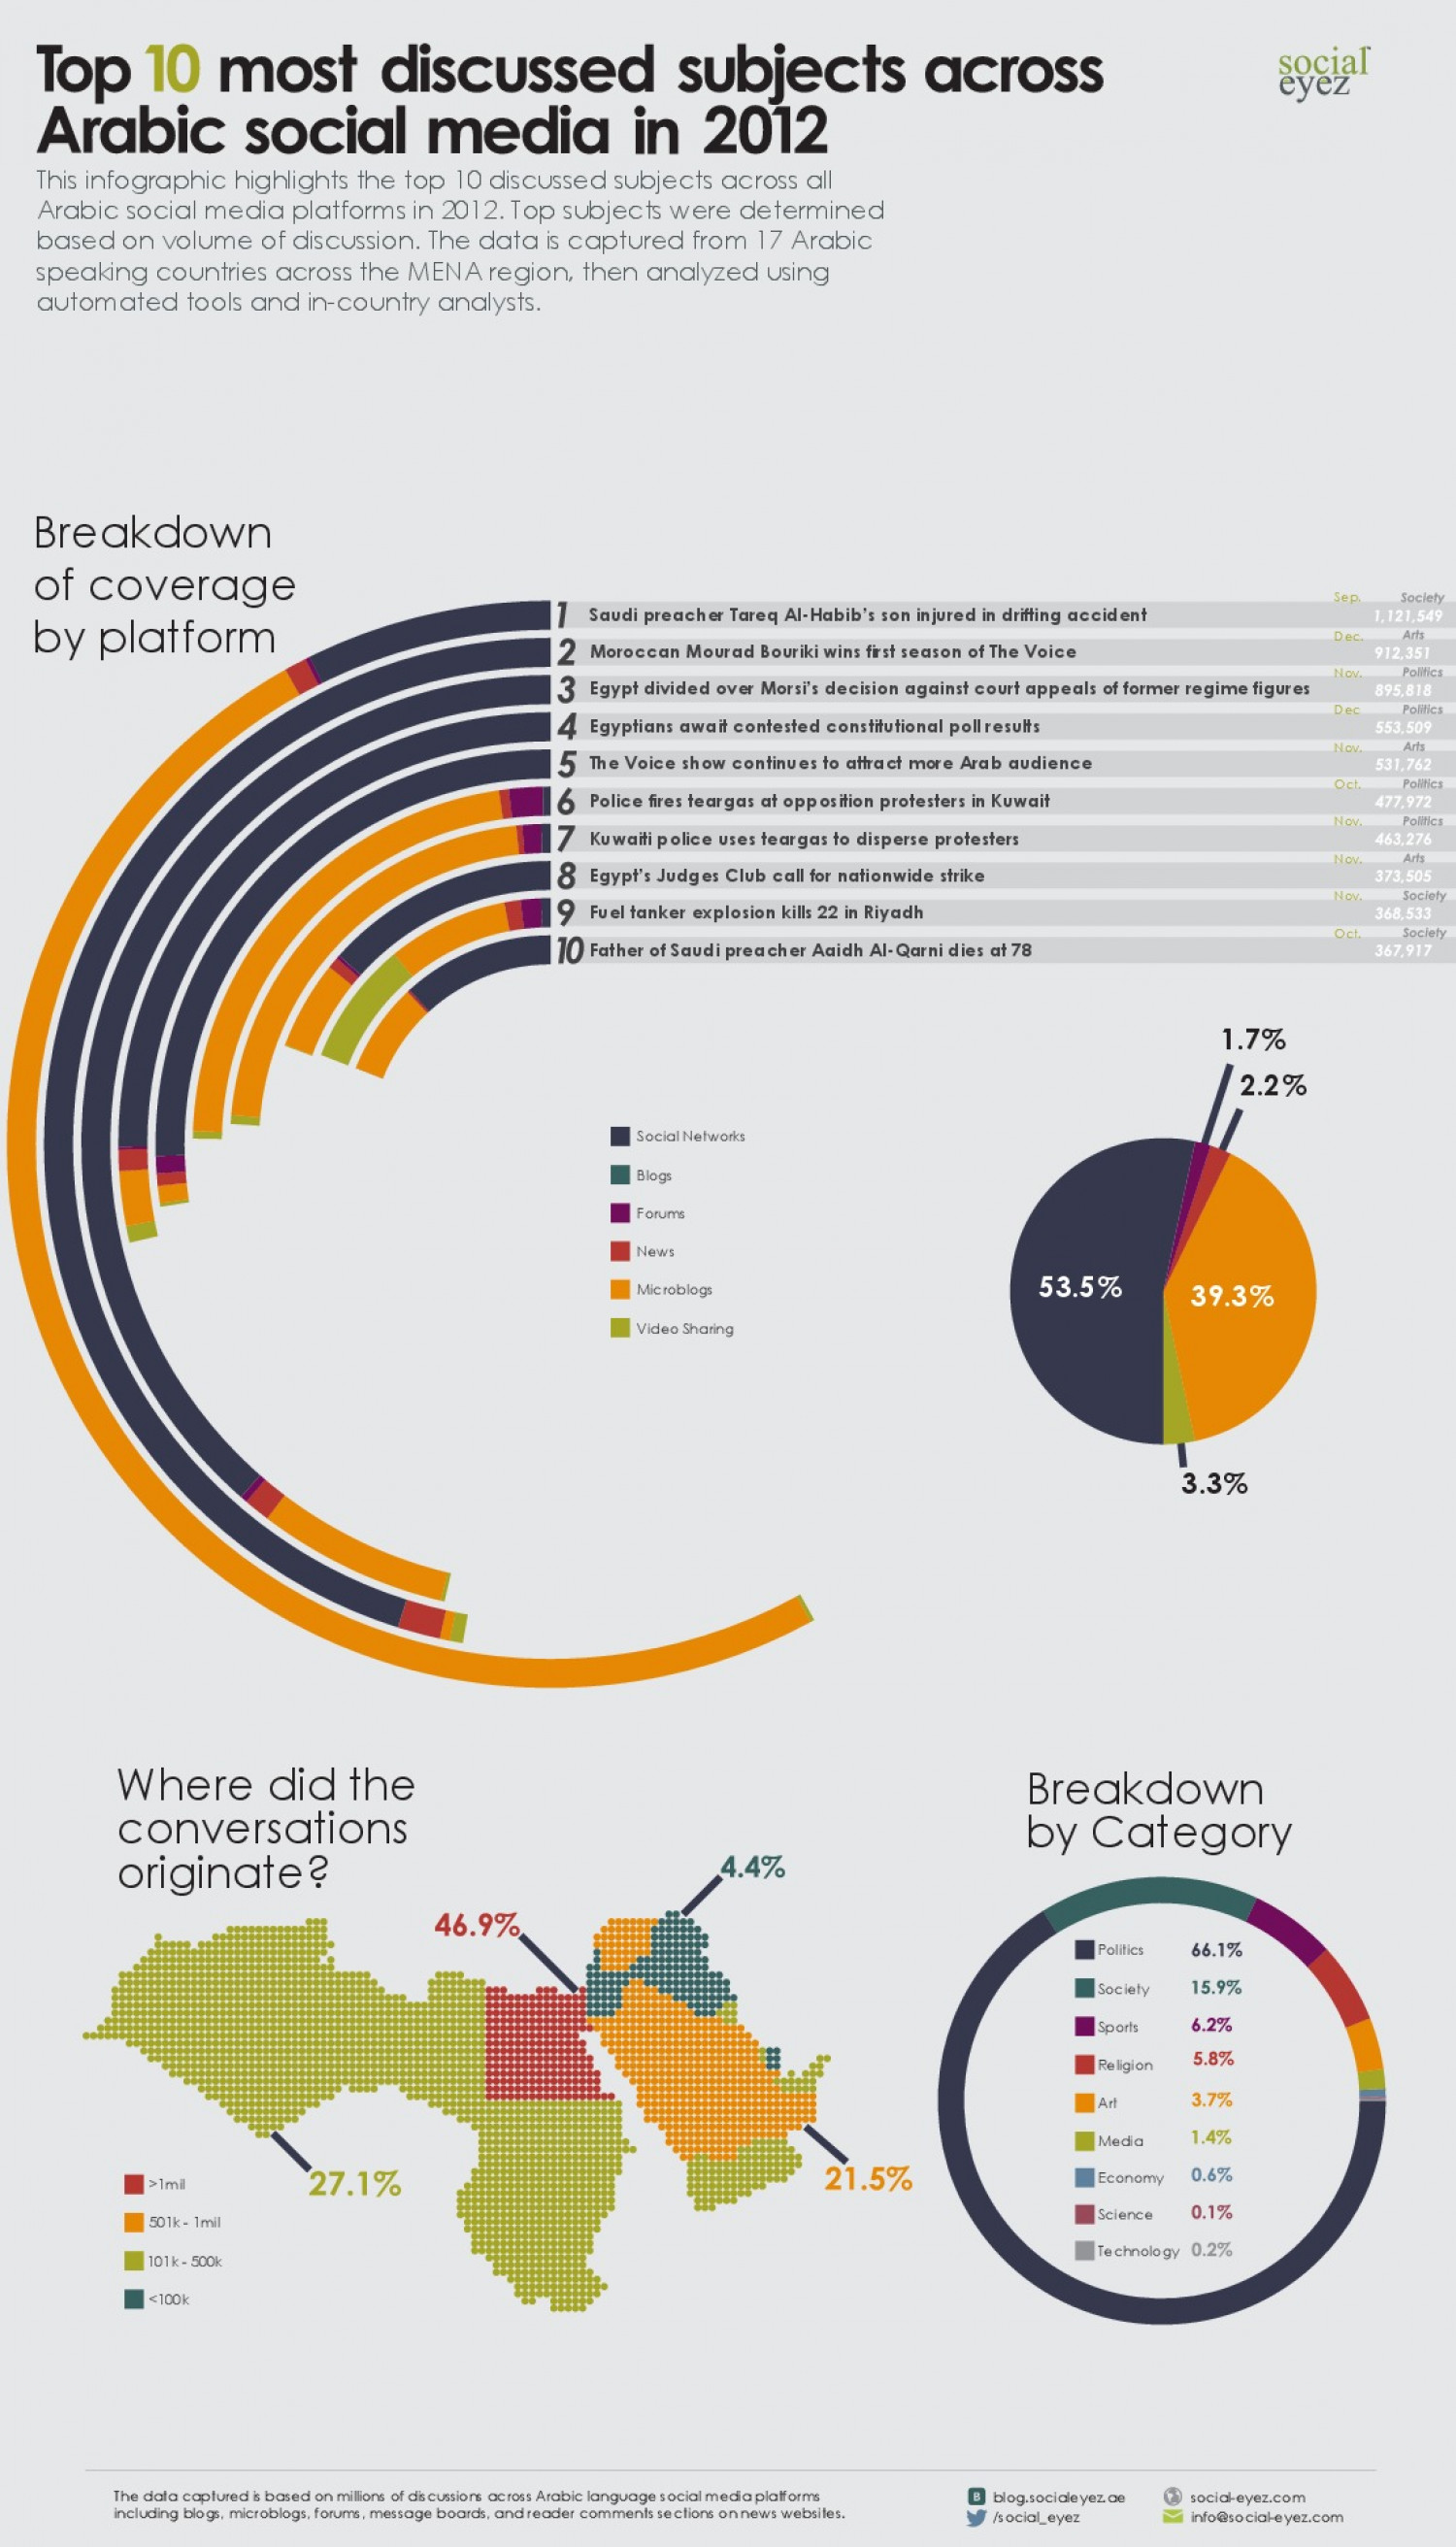 Top 10 Most Discussed Subjects Across Arabic Social Media in 2012 Infographic